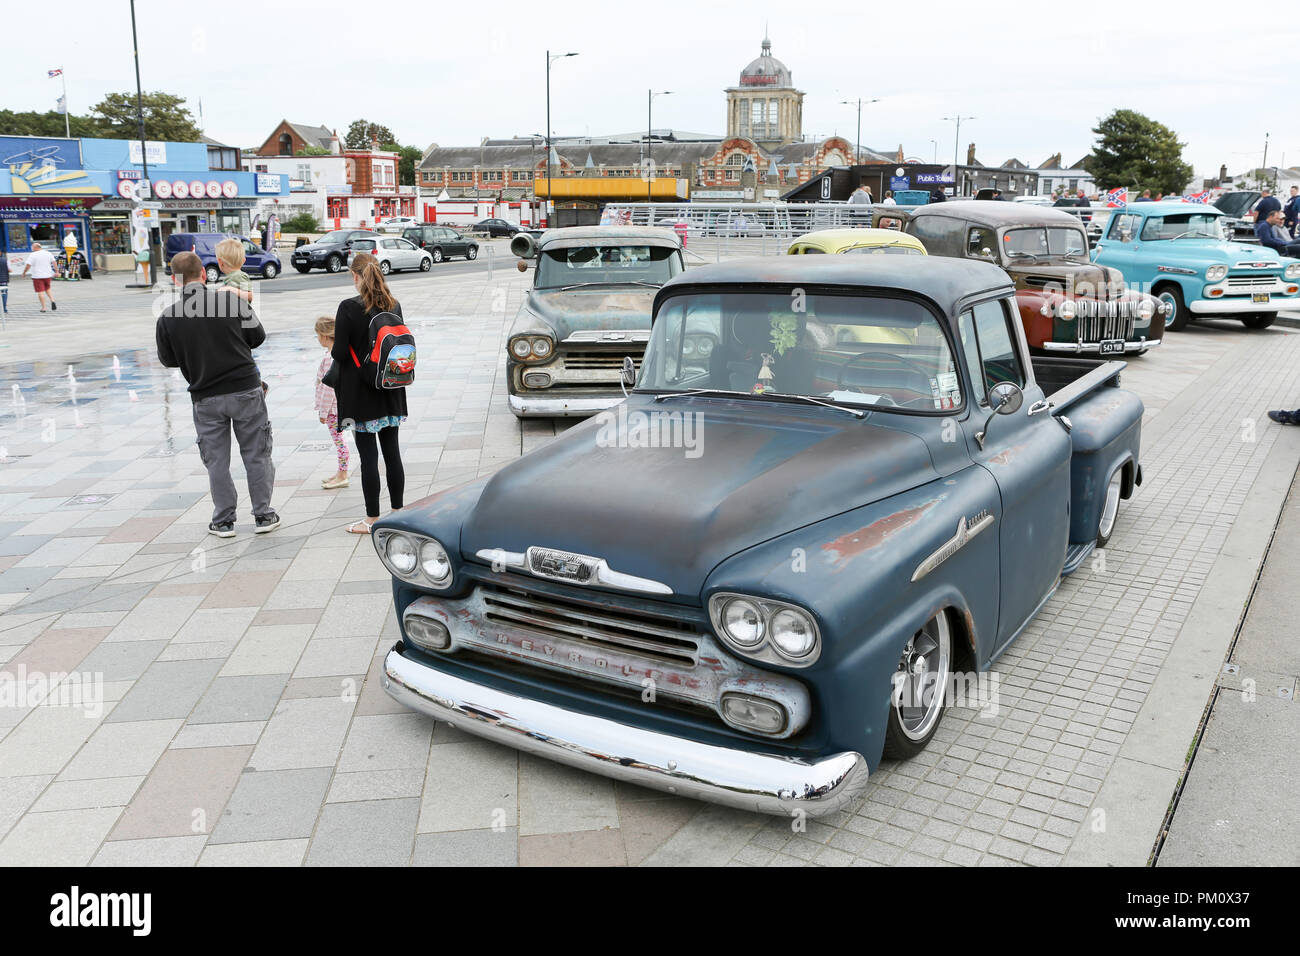 essex, uk. 16th sep, 2018. 16th sept 2018. classic car show at city